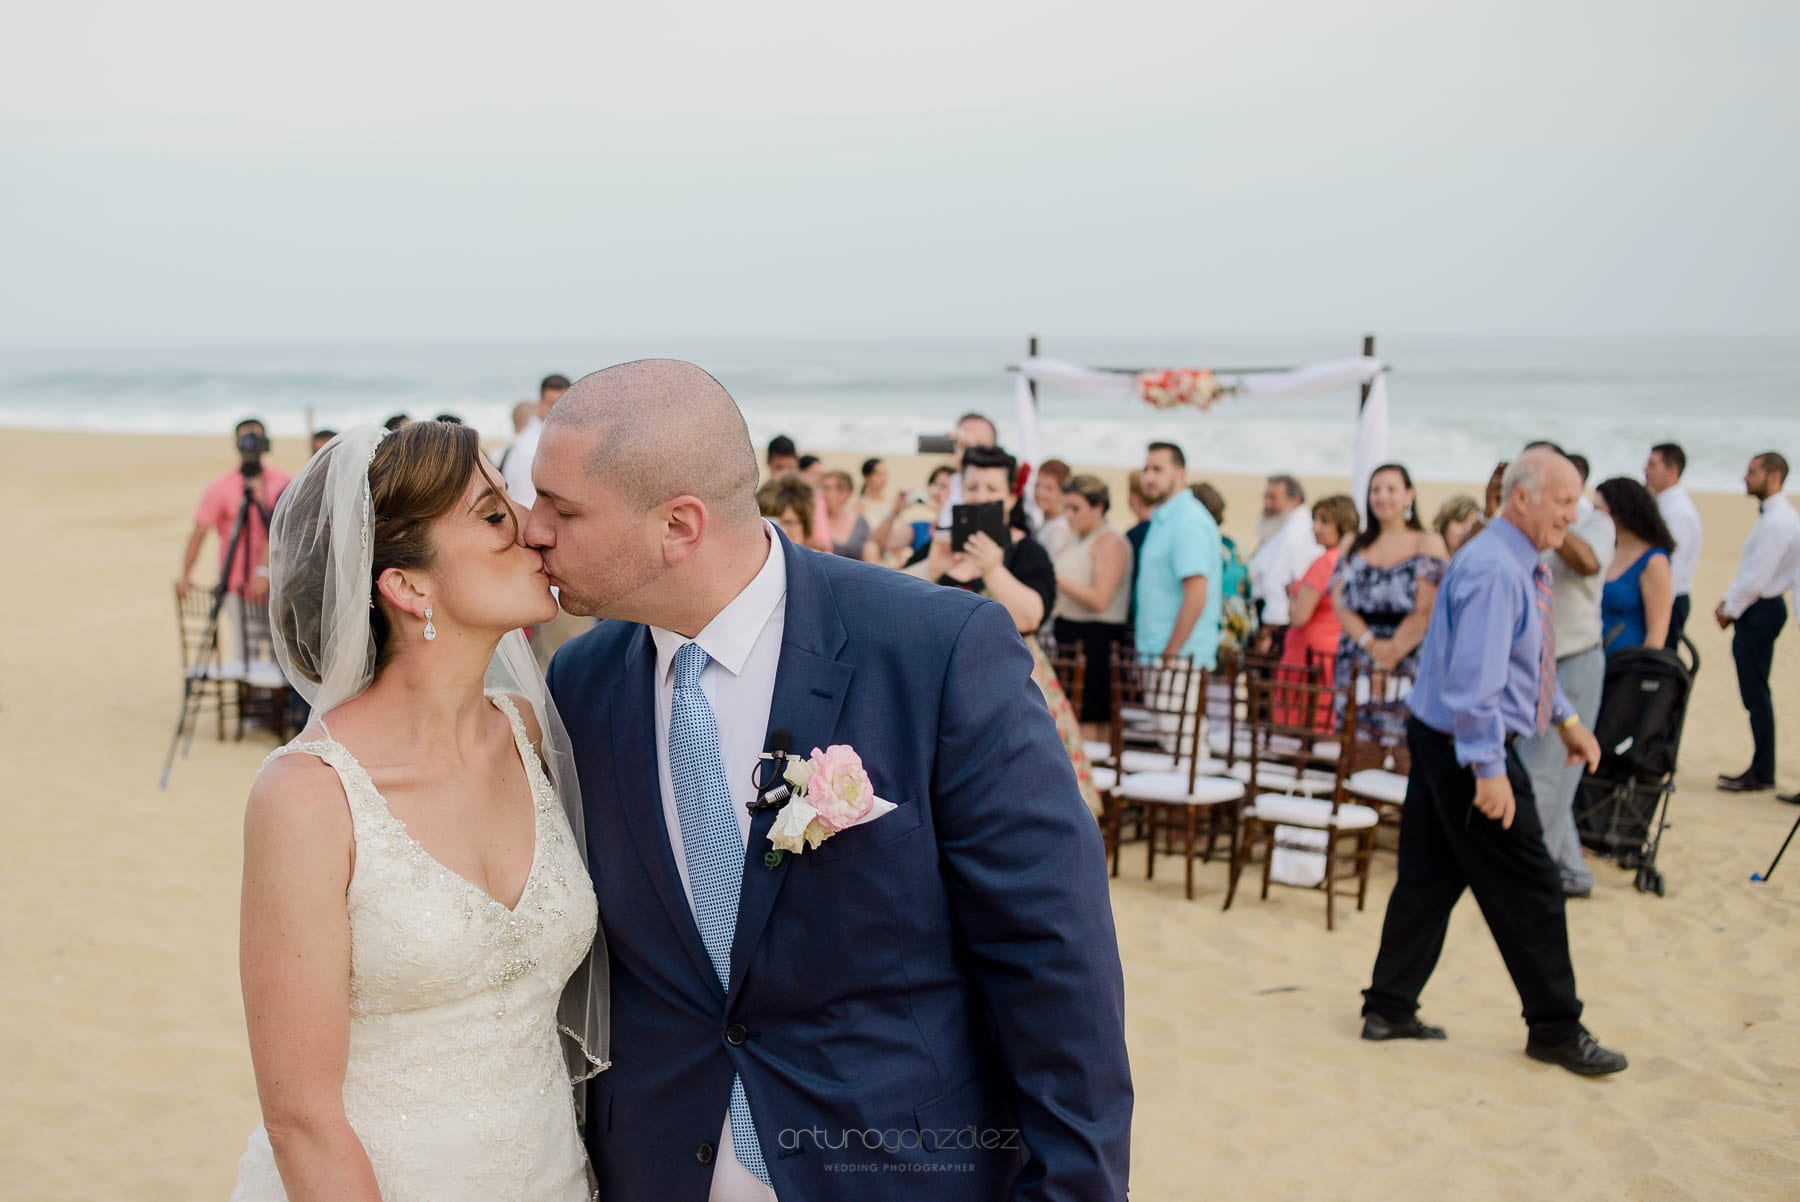 wedding-photos-pueblo-bonito-sunset-beach-4614